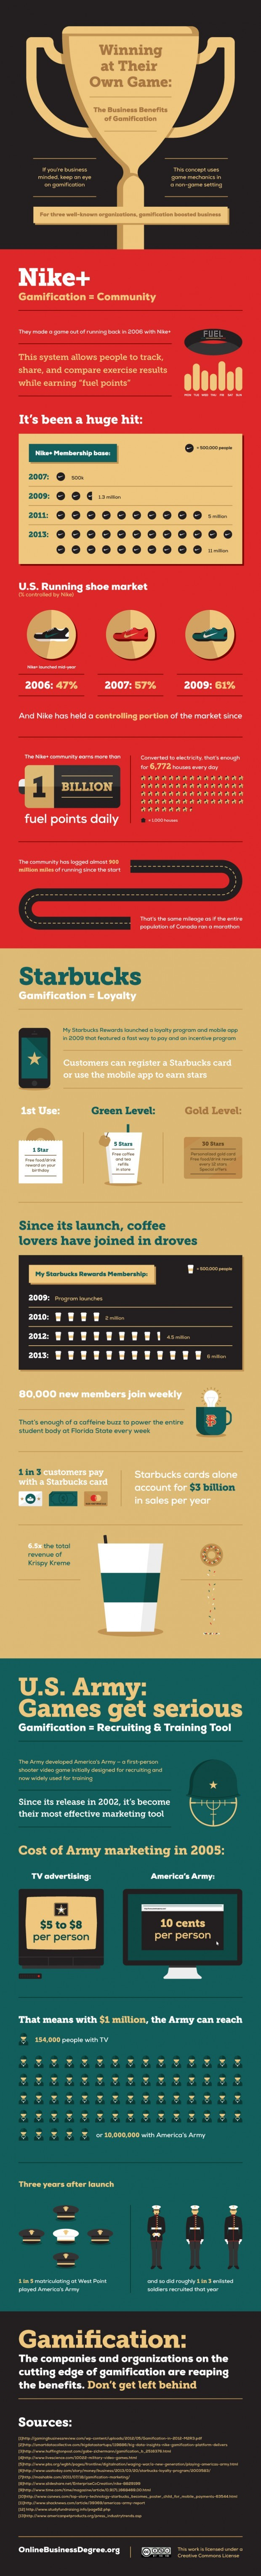 The-Business-Benefits-of-Gamification-Infographic